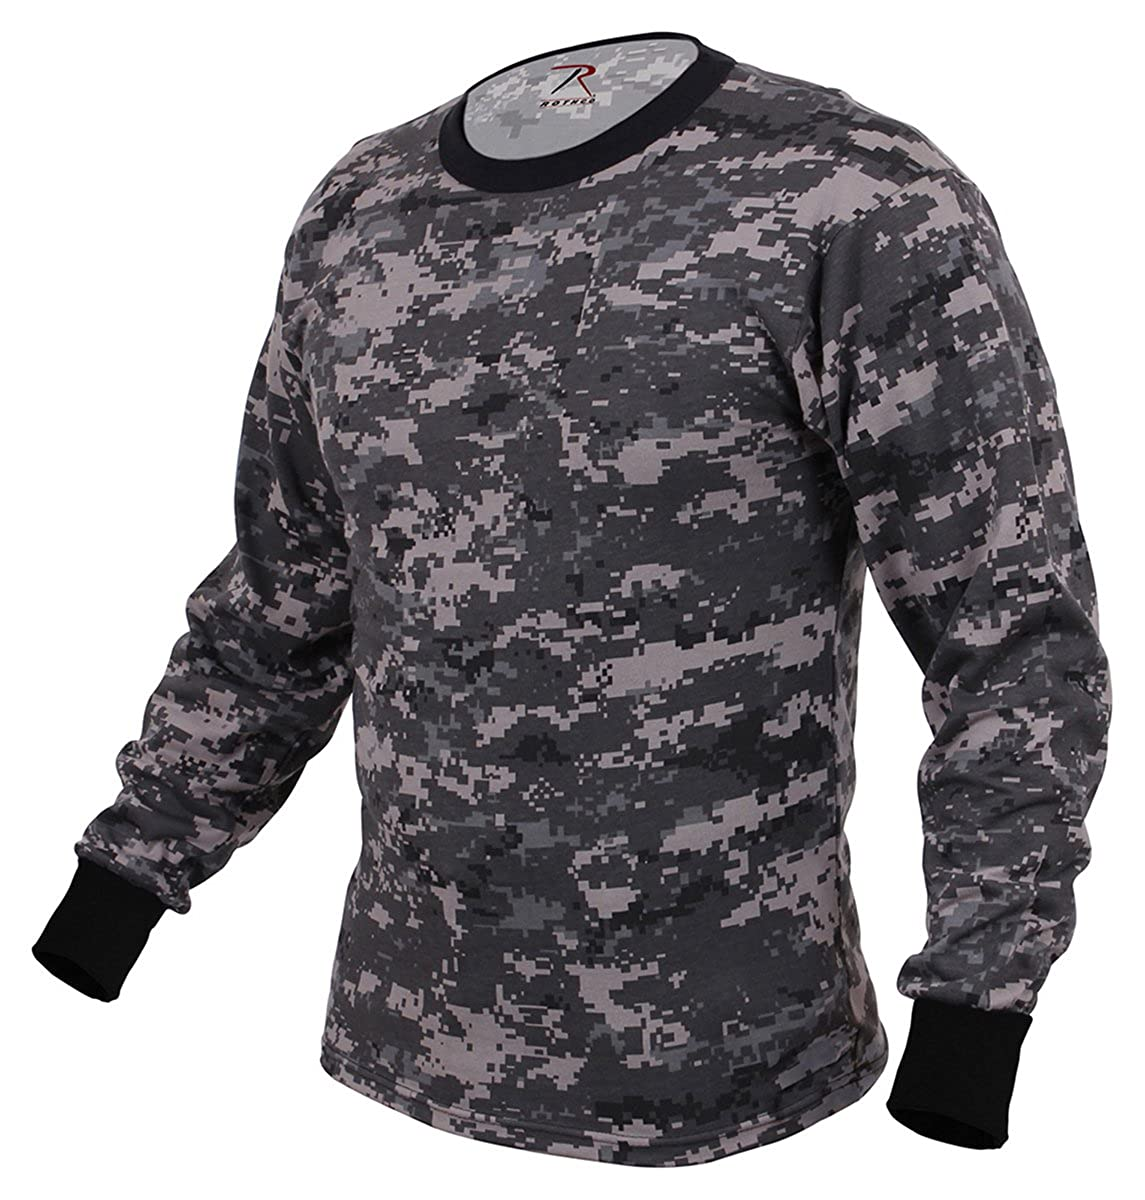 Rothco Long Sleeve Digital Camo T-Shirts, Subdued Urban Digital Camo - X Large RSR Group Inc 67780XLRG